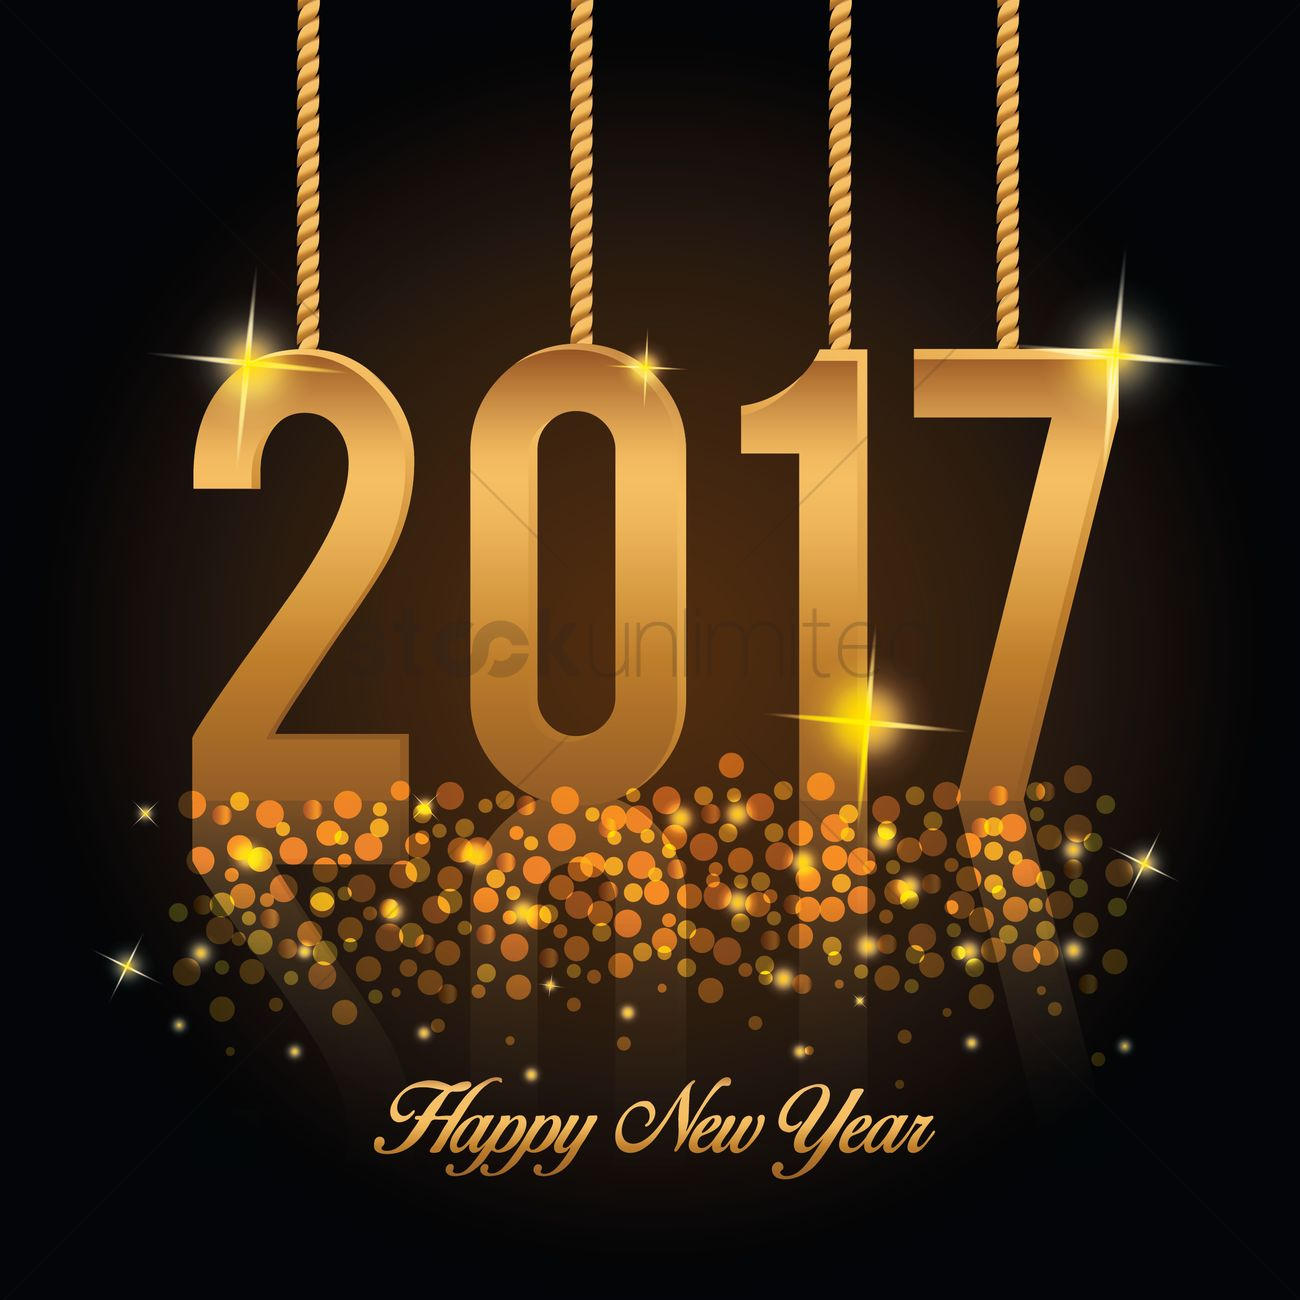 Happy New Year 2017 Wishes: Happy New Year 2017 Vector Image - 1913134